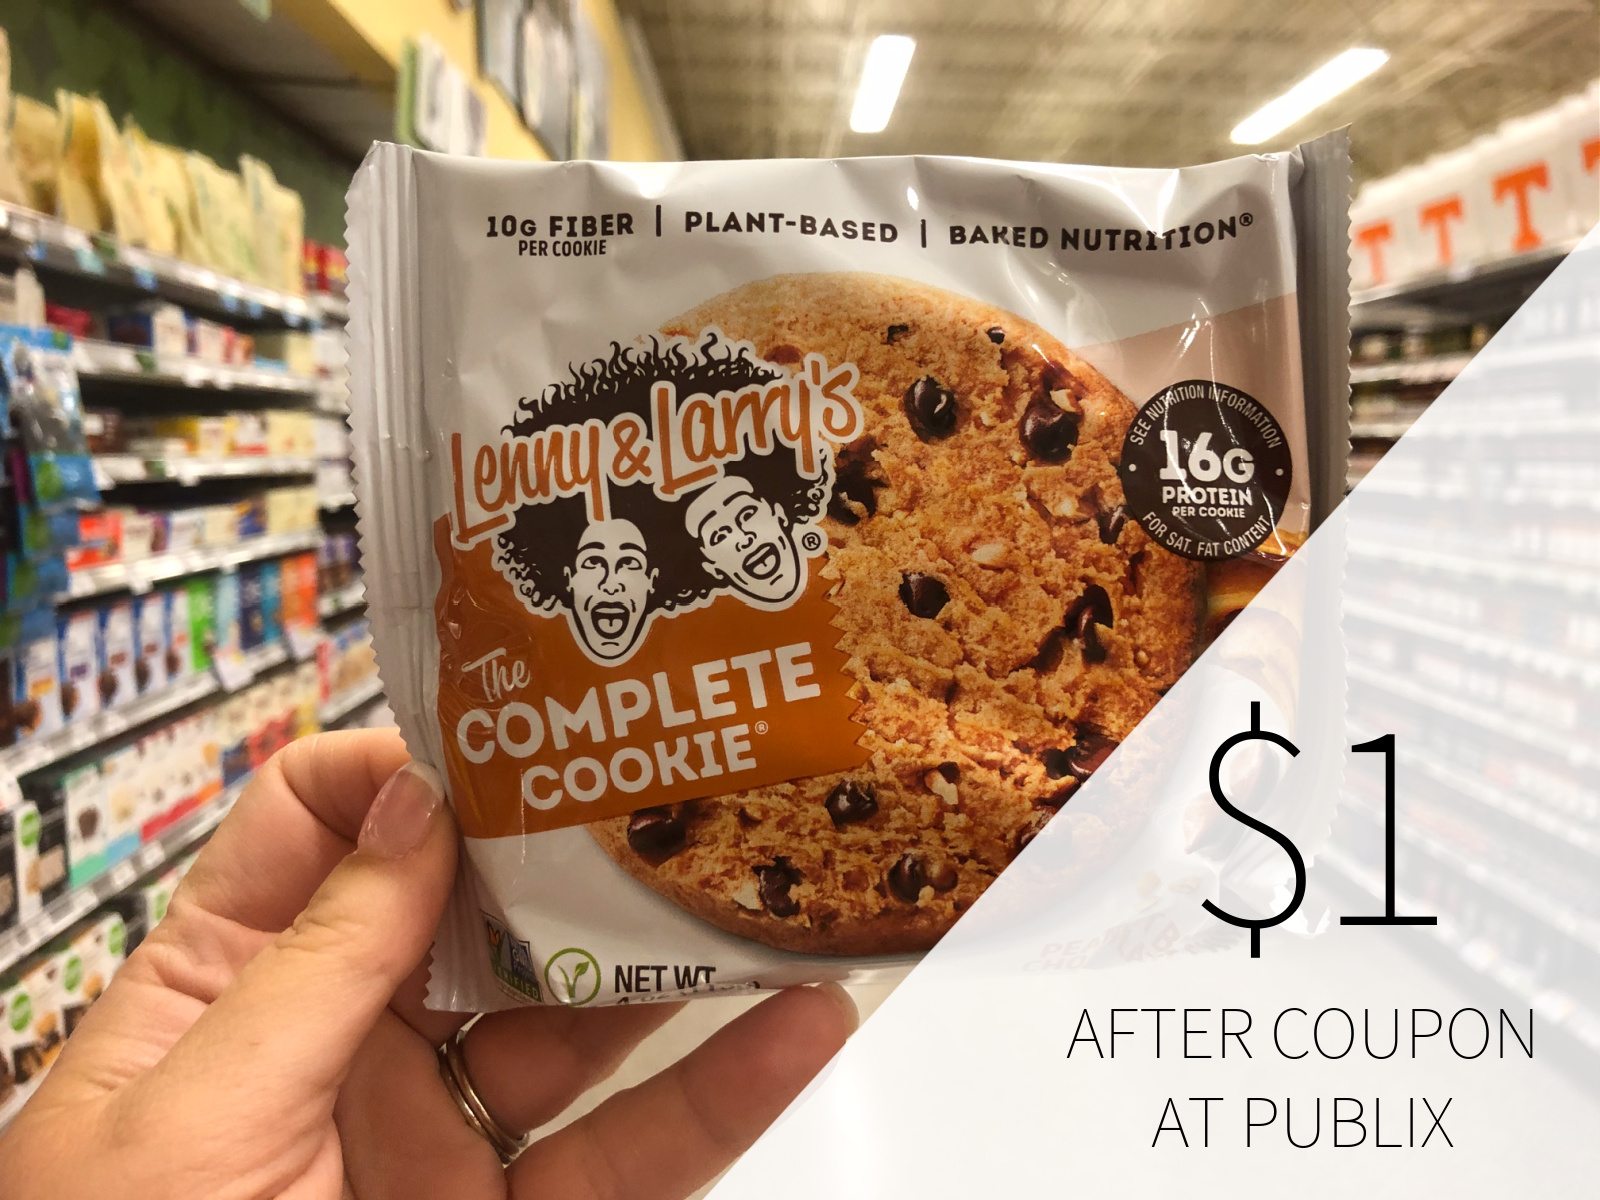 Lenny & Larry's The Complete Cookie As Low As $1 At Publix on I Heart Publix 1